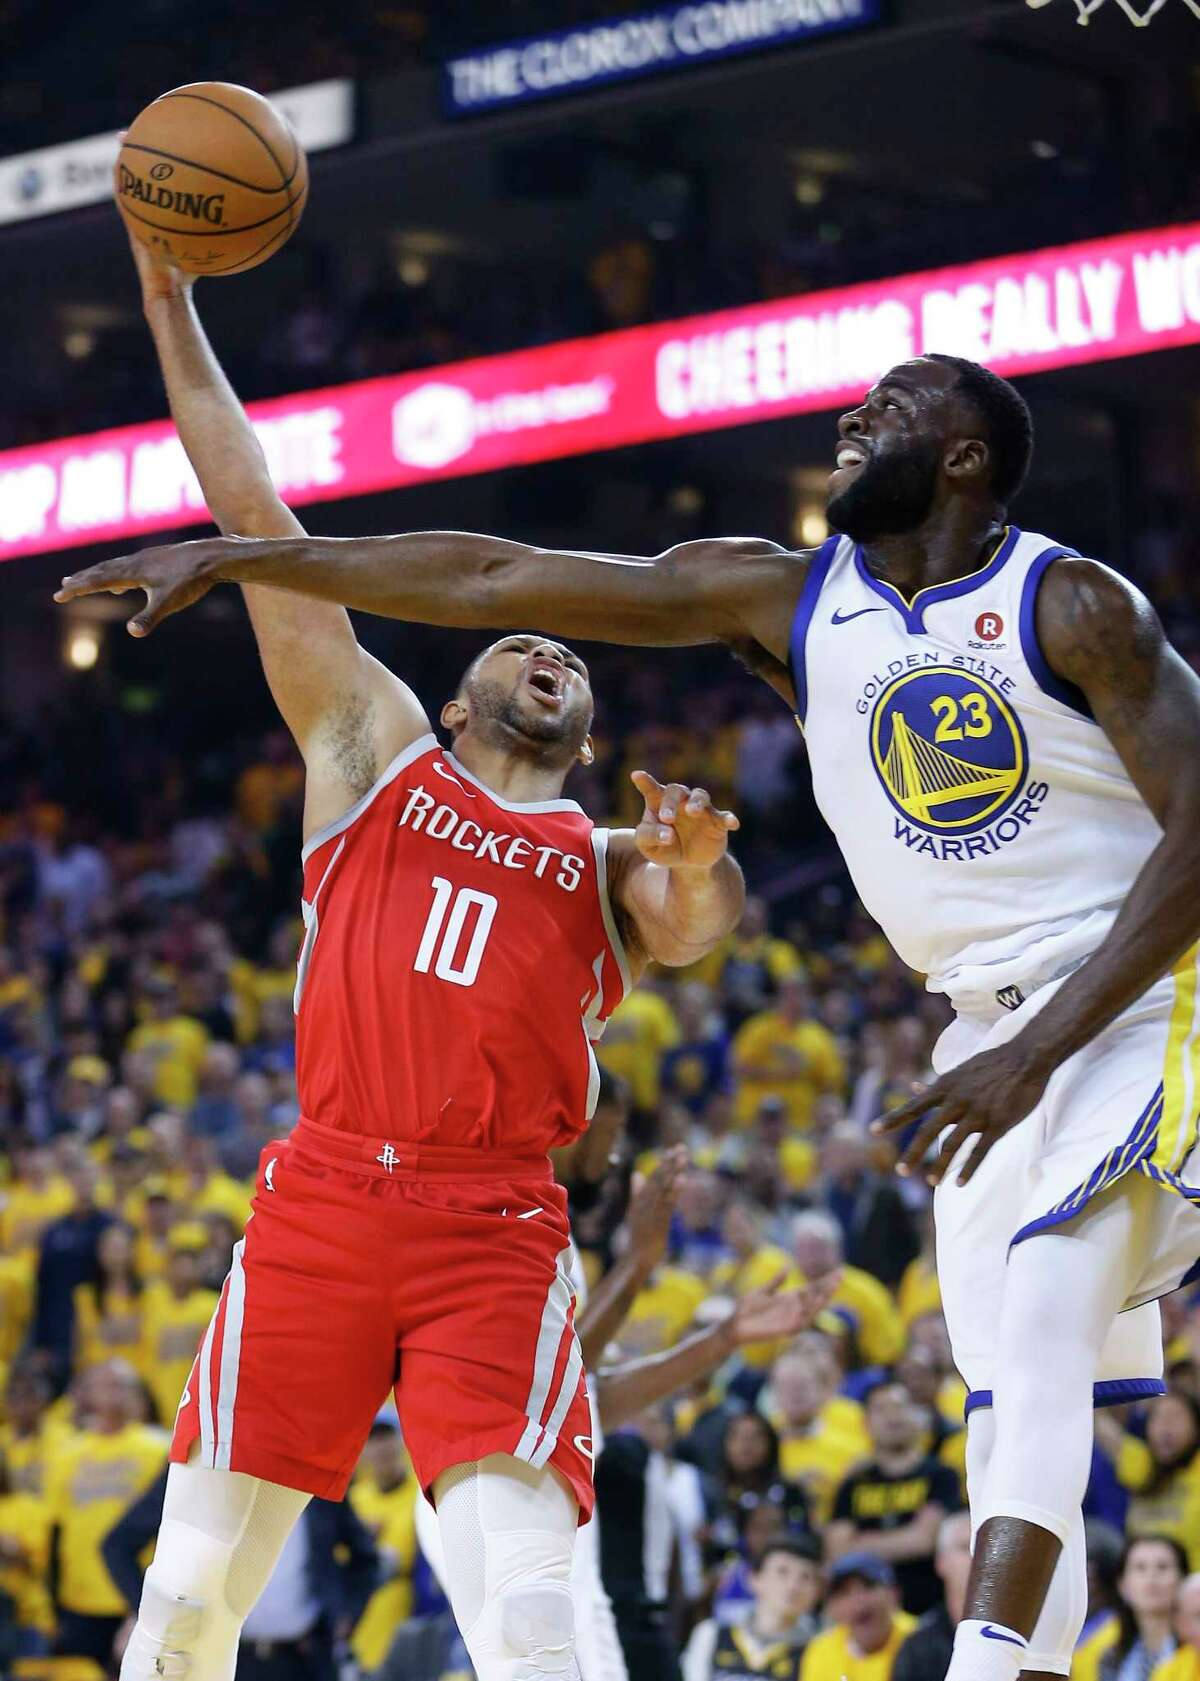 Houston Rockets guard Eric Gordon (10) takes a shot against Golden State Warriors forward Draymond Green (23) during the first half of Game 3 of the Western Conference Finals at Oracle Arena Sunday, May 20, 2018 inOakland.